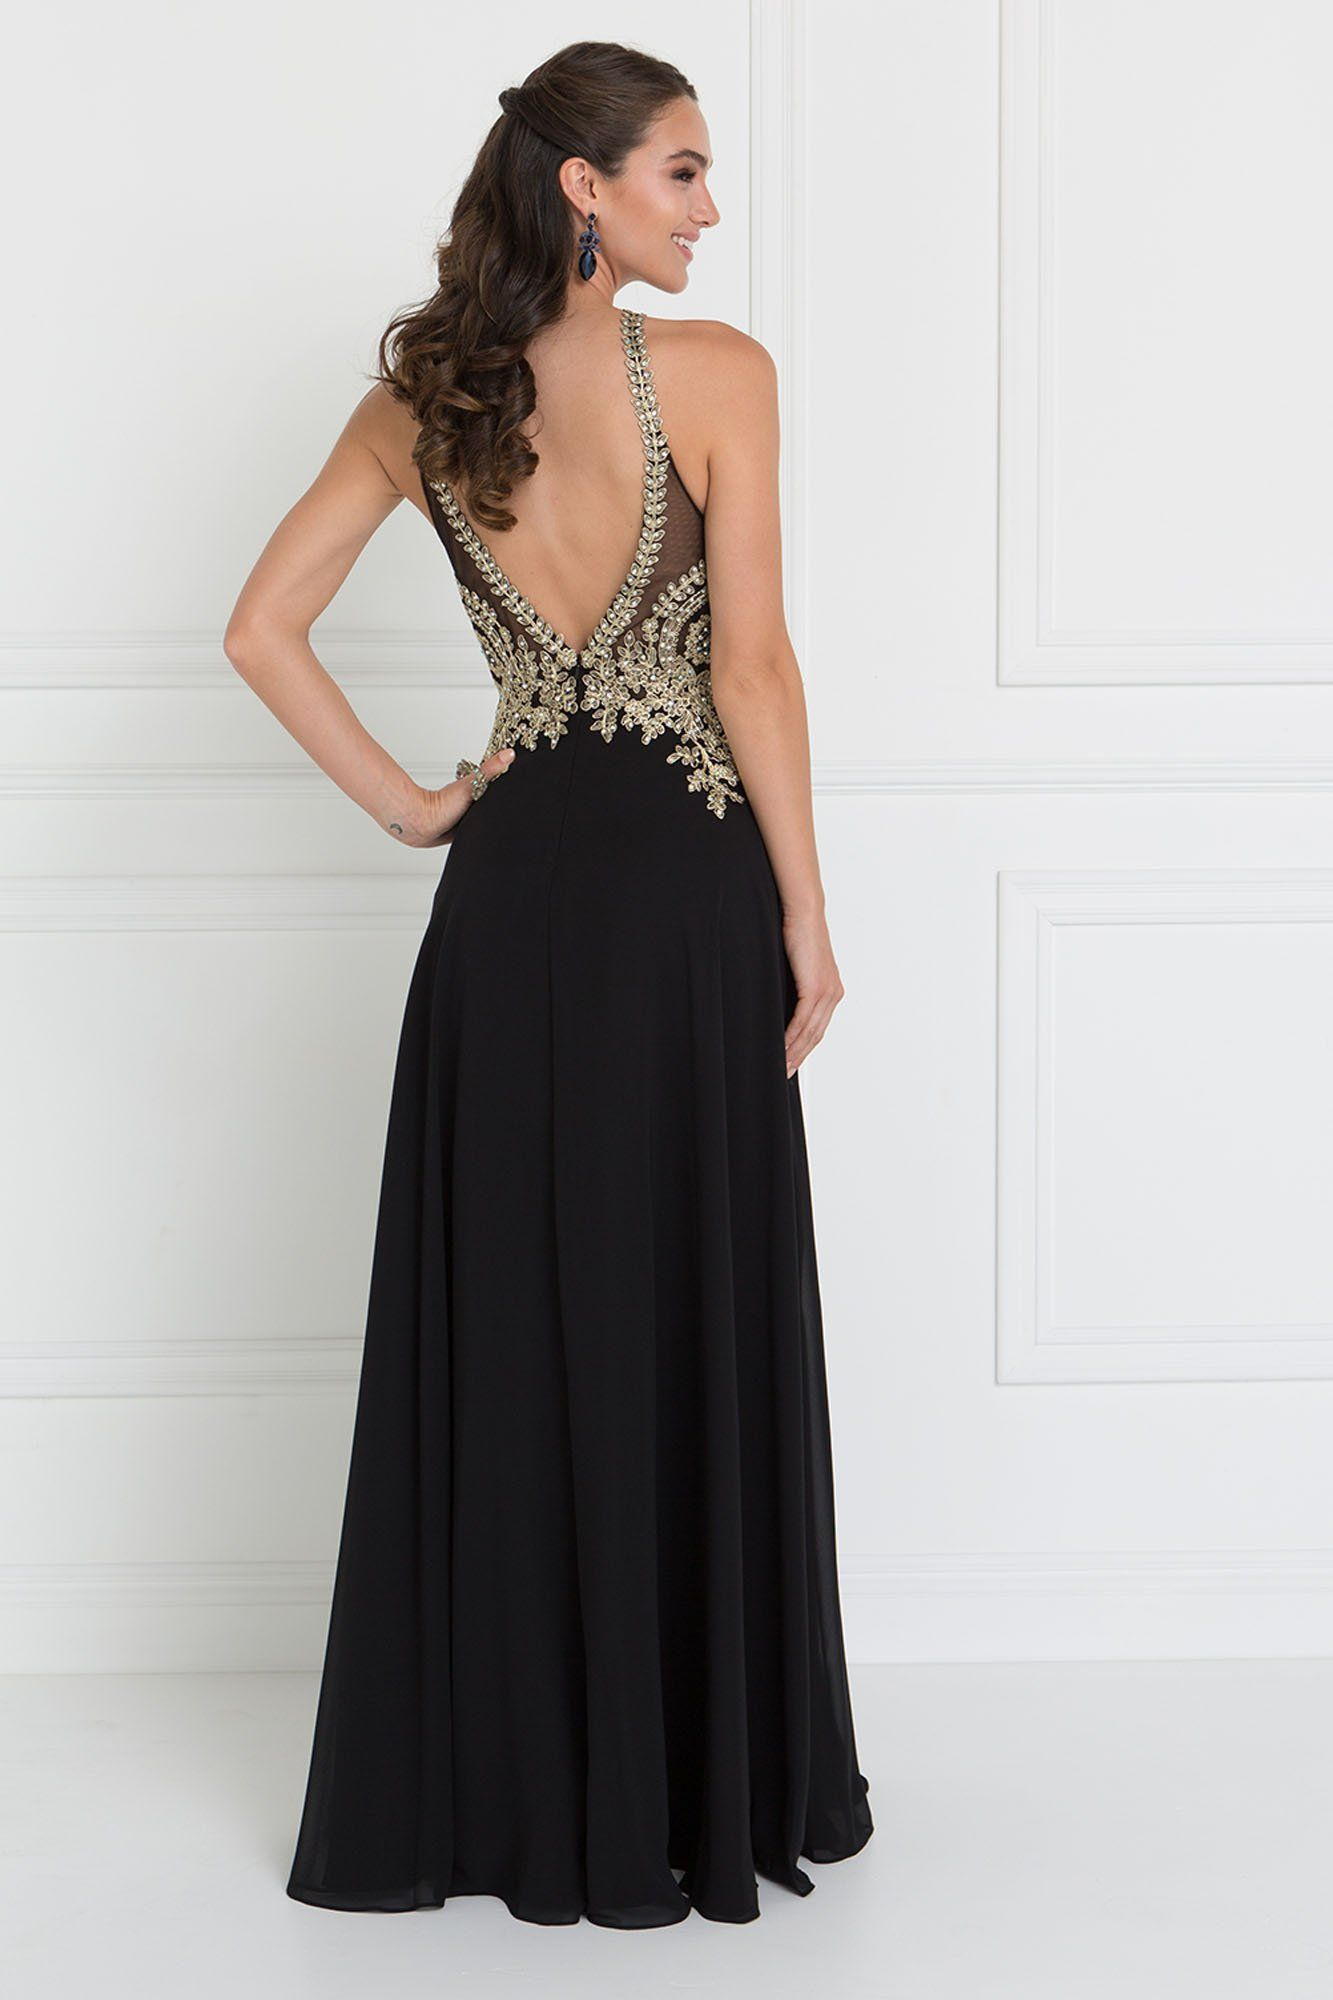 e5219430b6c1 Halter top prom dress Wow the crowd with this elegant prom dress with  jeweled, gold lace halter top. An amazing, long chiffon dress with peep  hole bust and ...